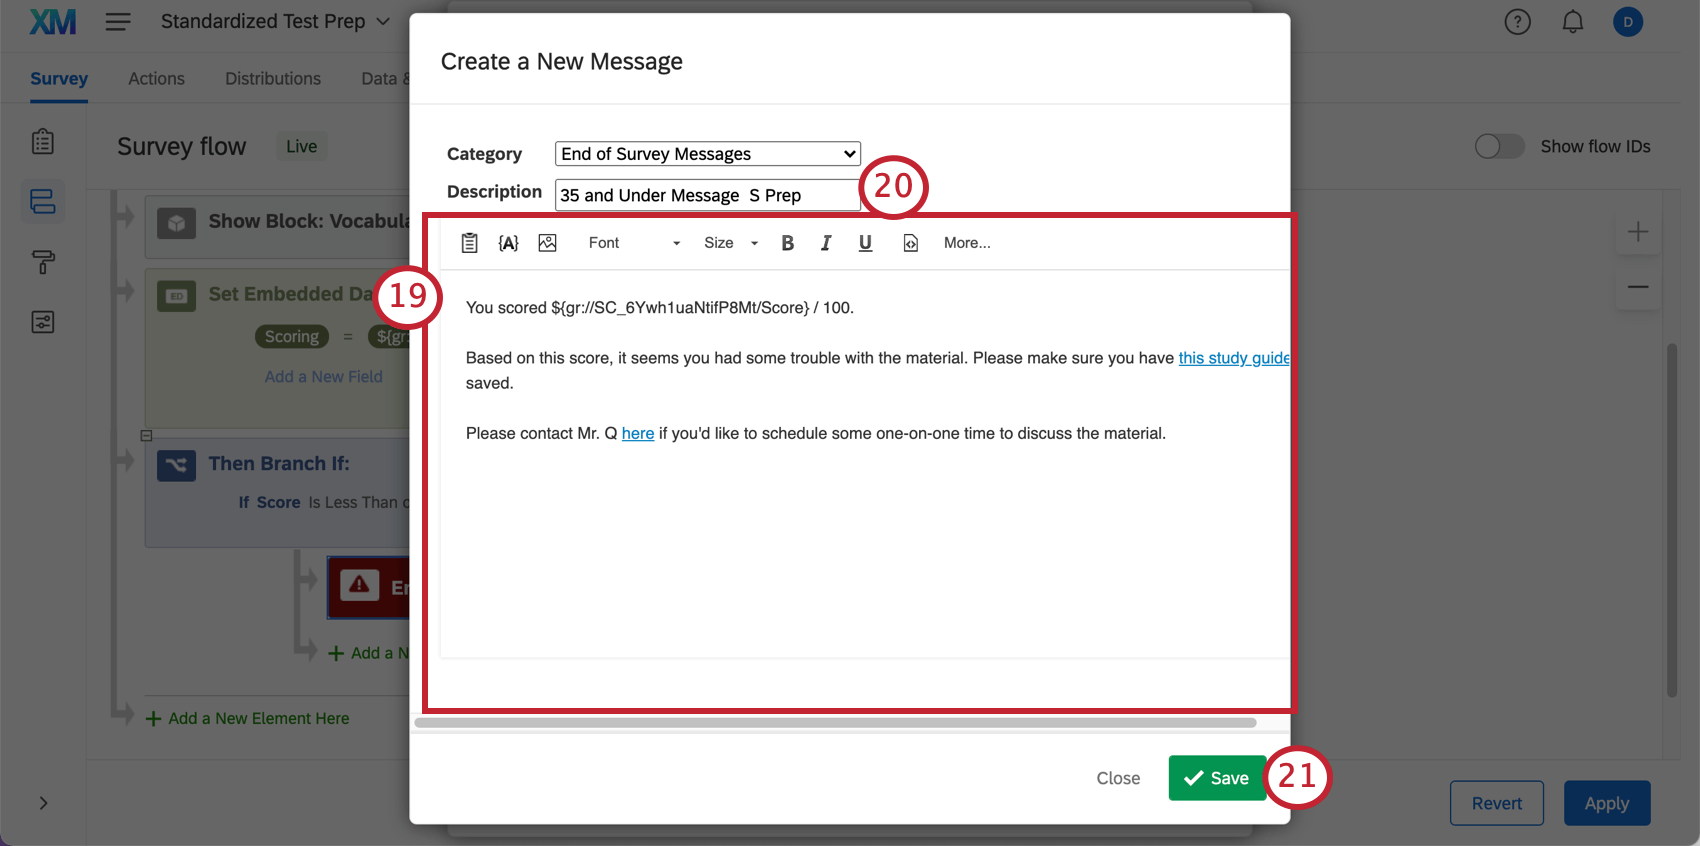 Sample message has score piped in and a helpful name